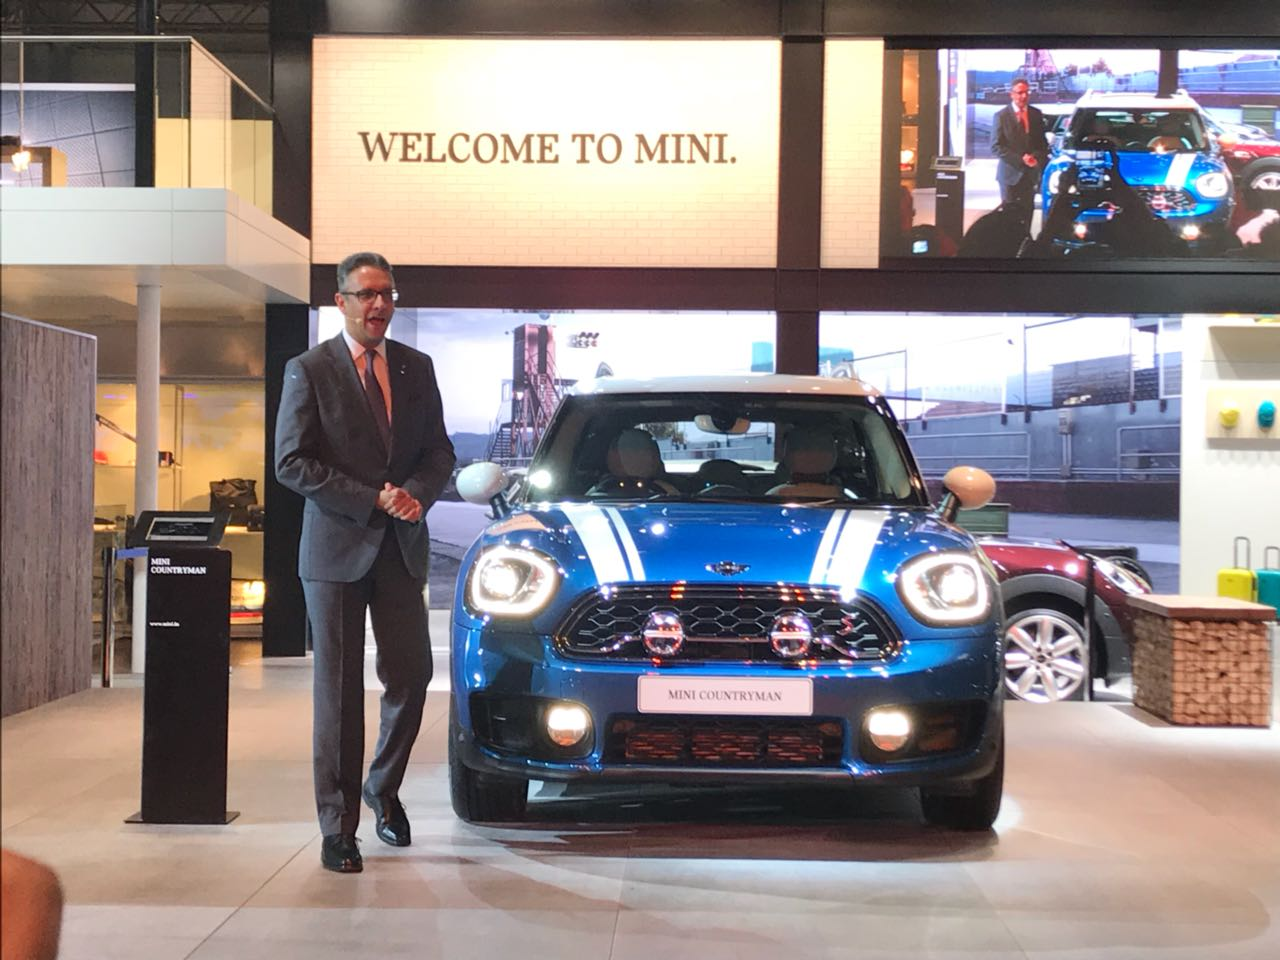 <p>The Mini Countryman showcased!</p>